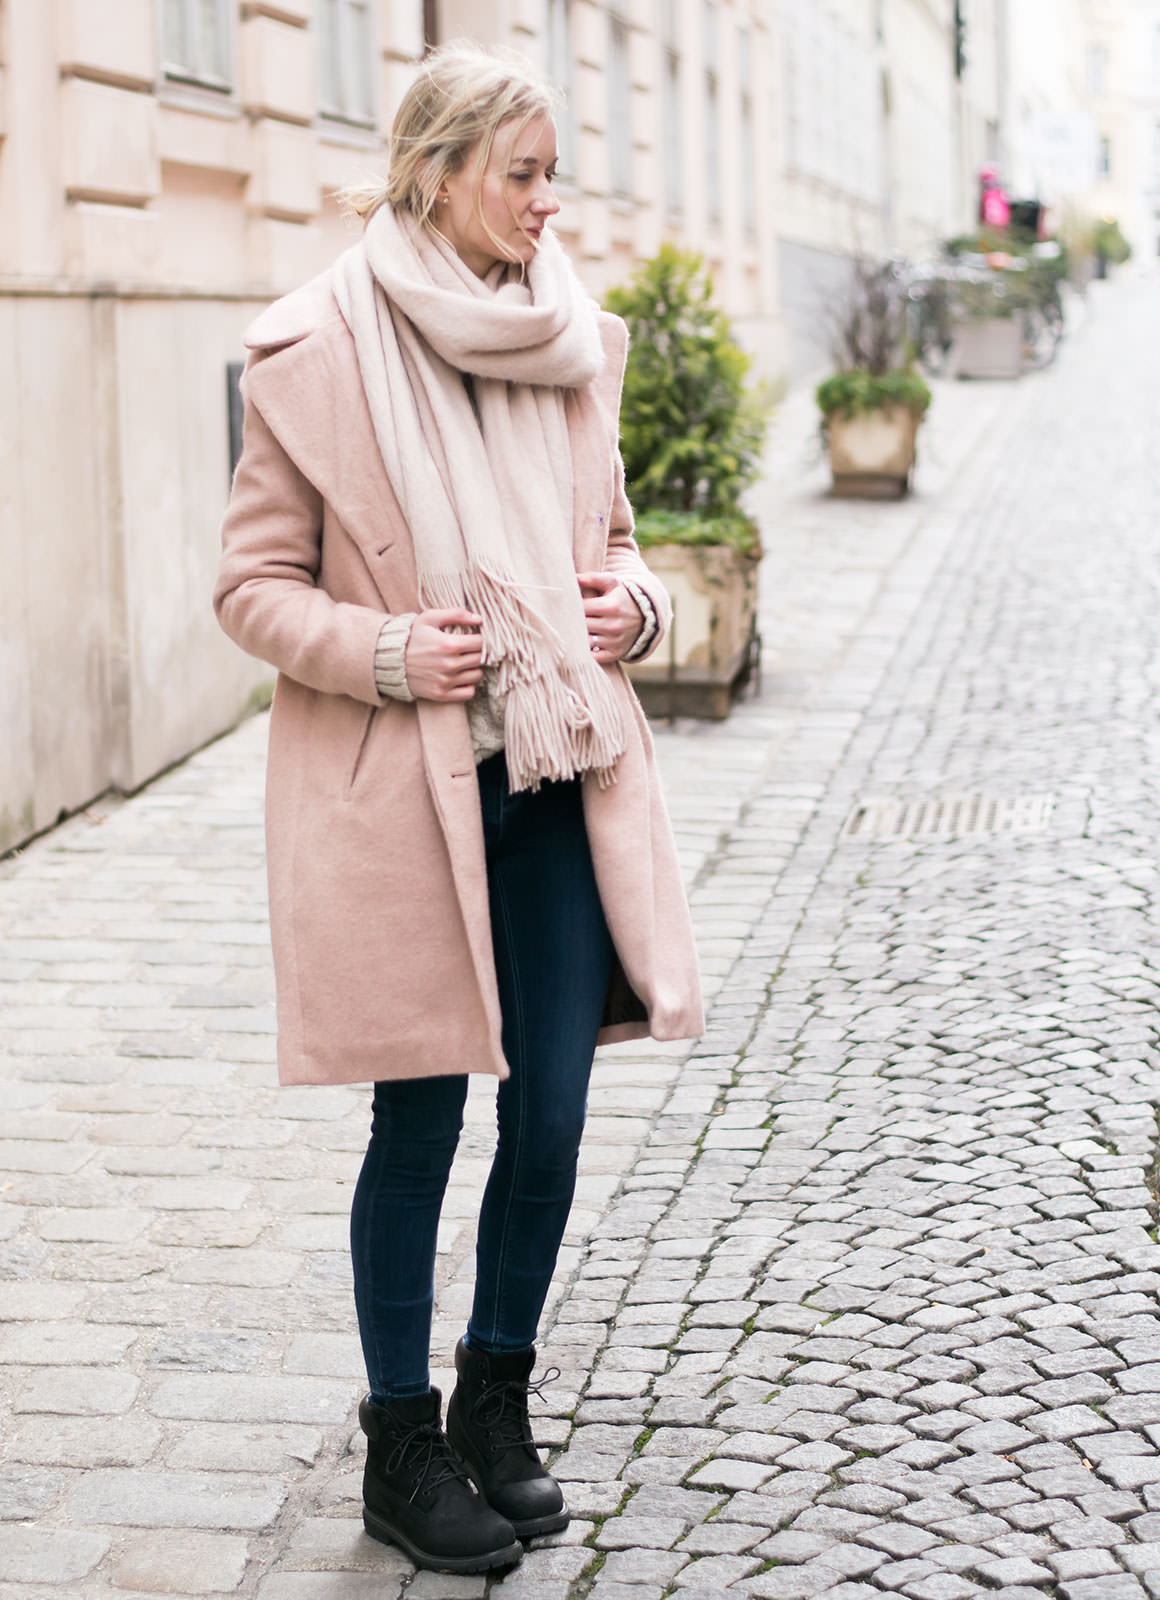 Blush Crush: How to Wear the Pale Pink Coat | Jayde Archives